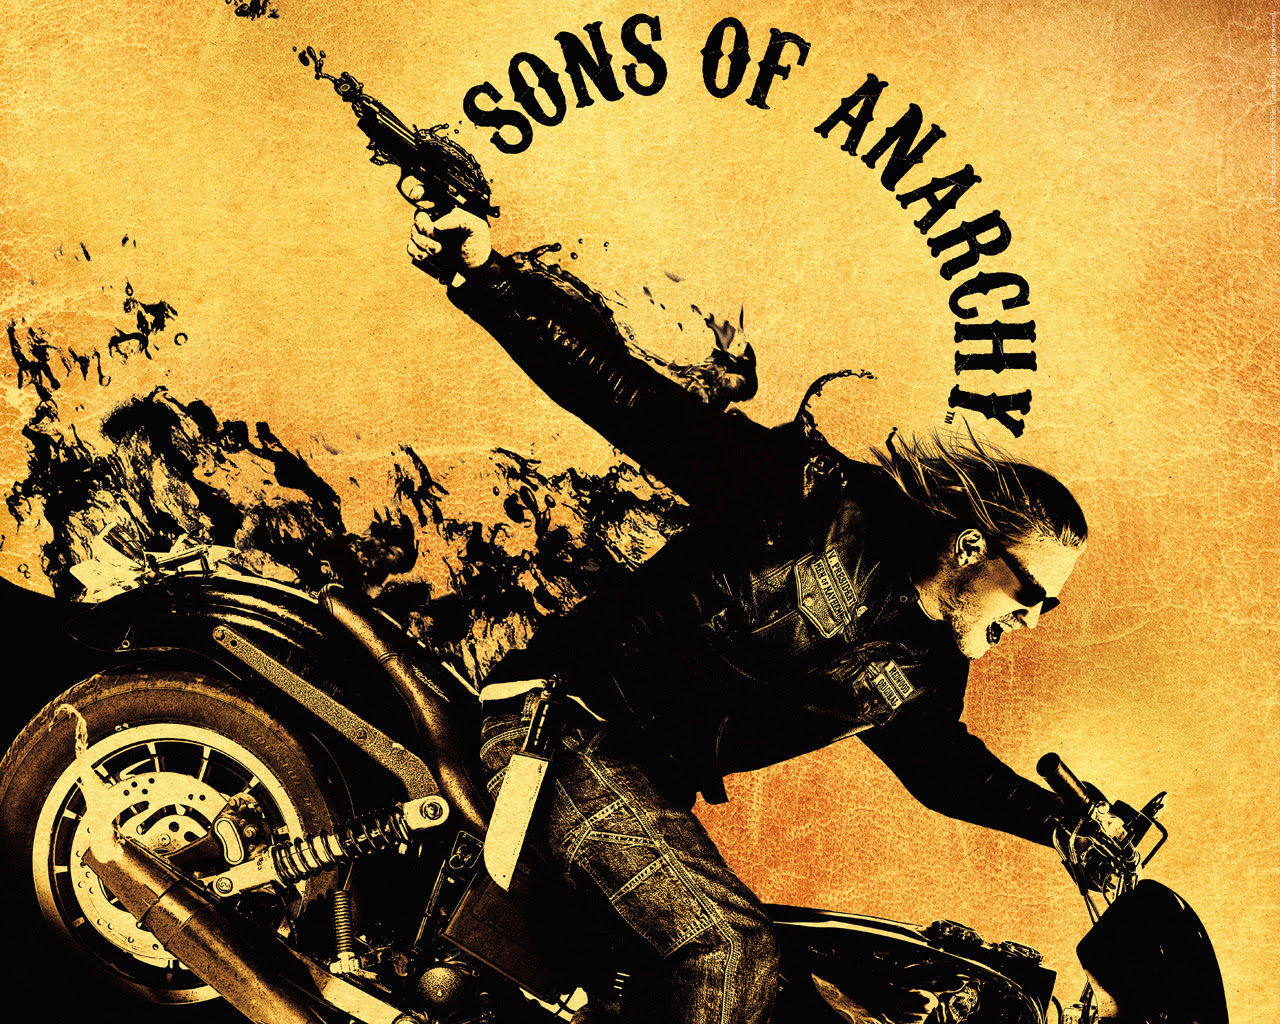 33 Amazing Sons Of Anarchy Backgrounds Qlty Ctrl Because The